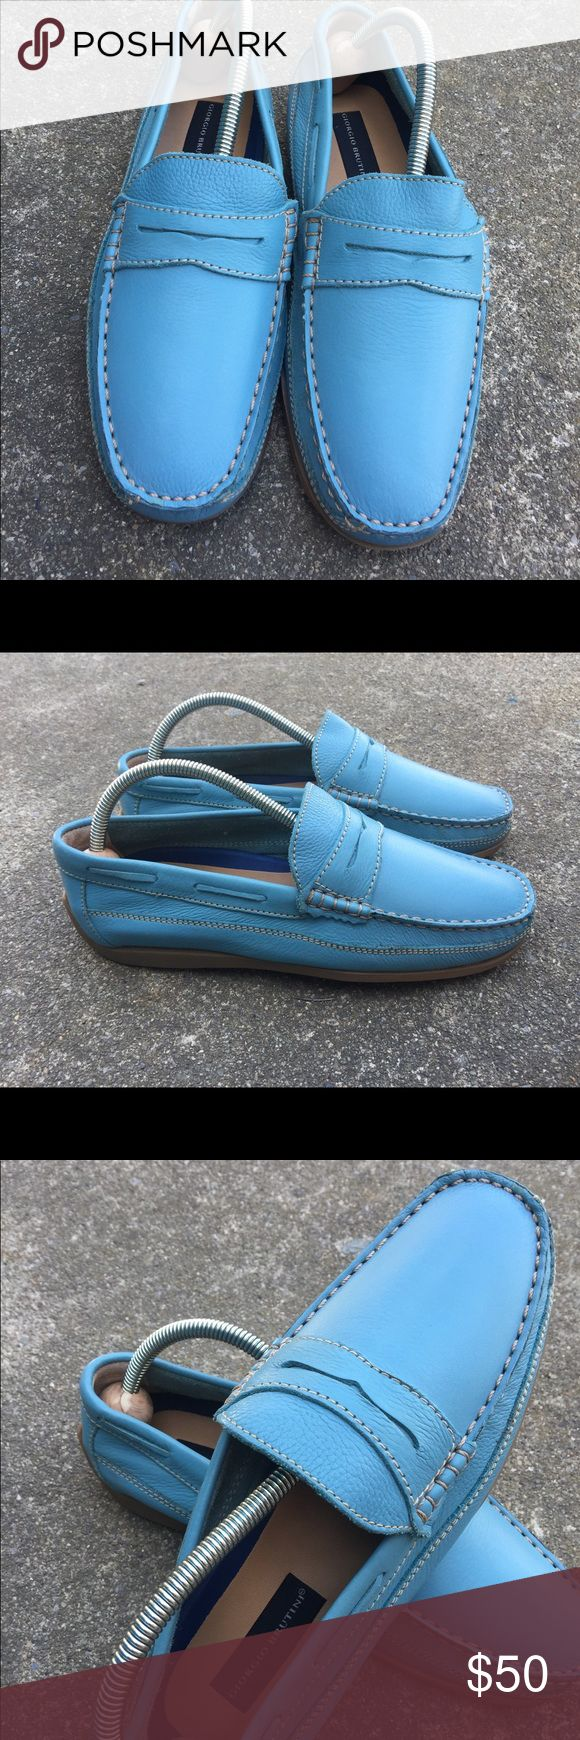 Men's Giorgio Brutini Baby Blue Leather Loafers 9M Men's Giorgio Brutini Baby Blue Leather Loafers 9M  New! No Tags! Giorgio Brutini Shoes Loafers & Slip-Ons